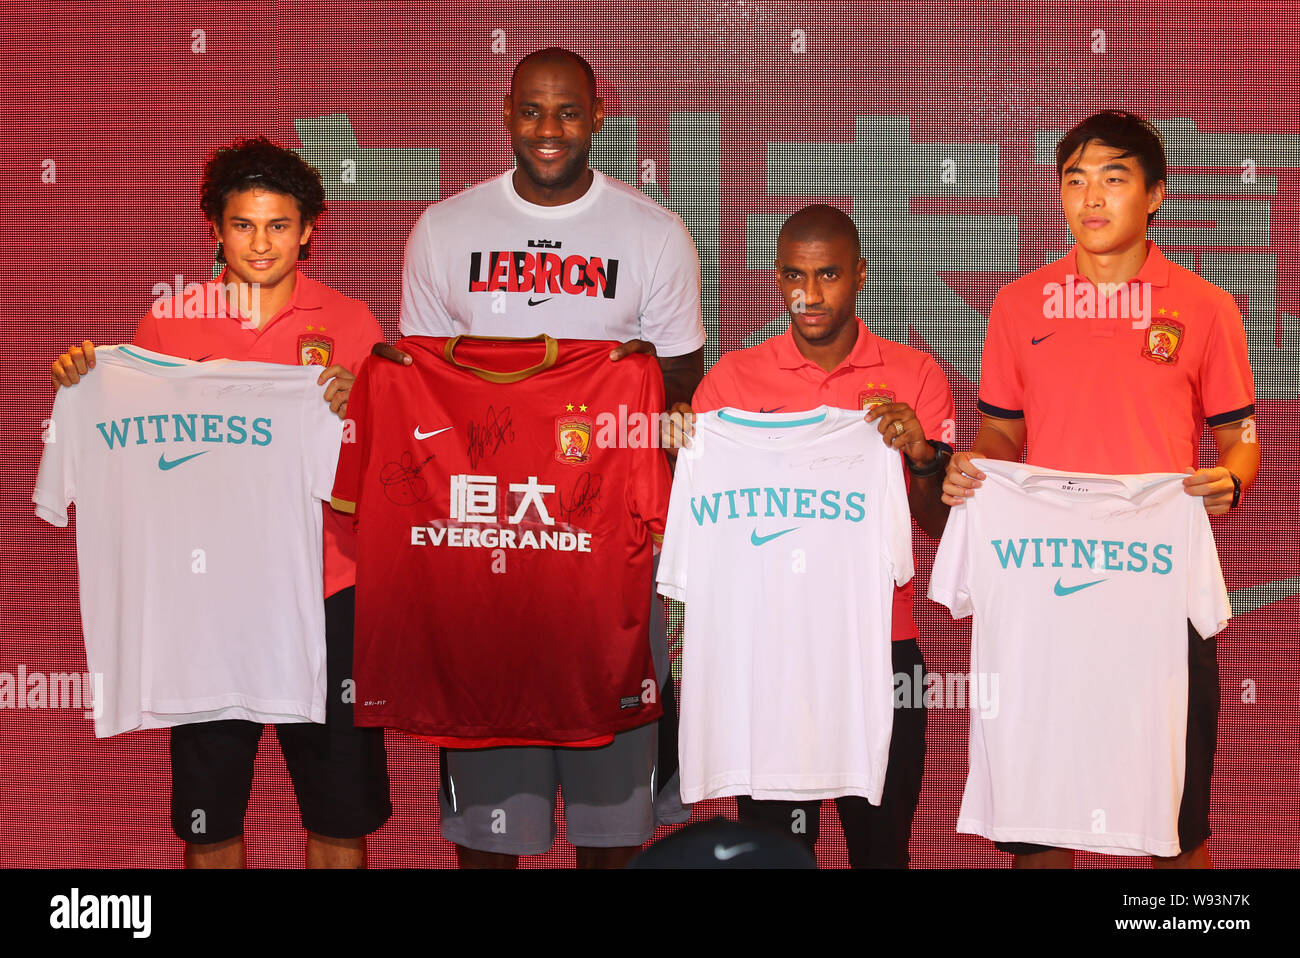 outlet store 0b56d 24642 NBA superstar LeBron James, second left, holds a team jersey ...